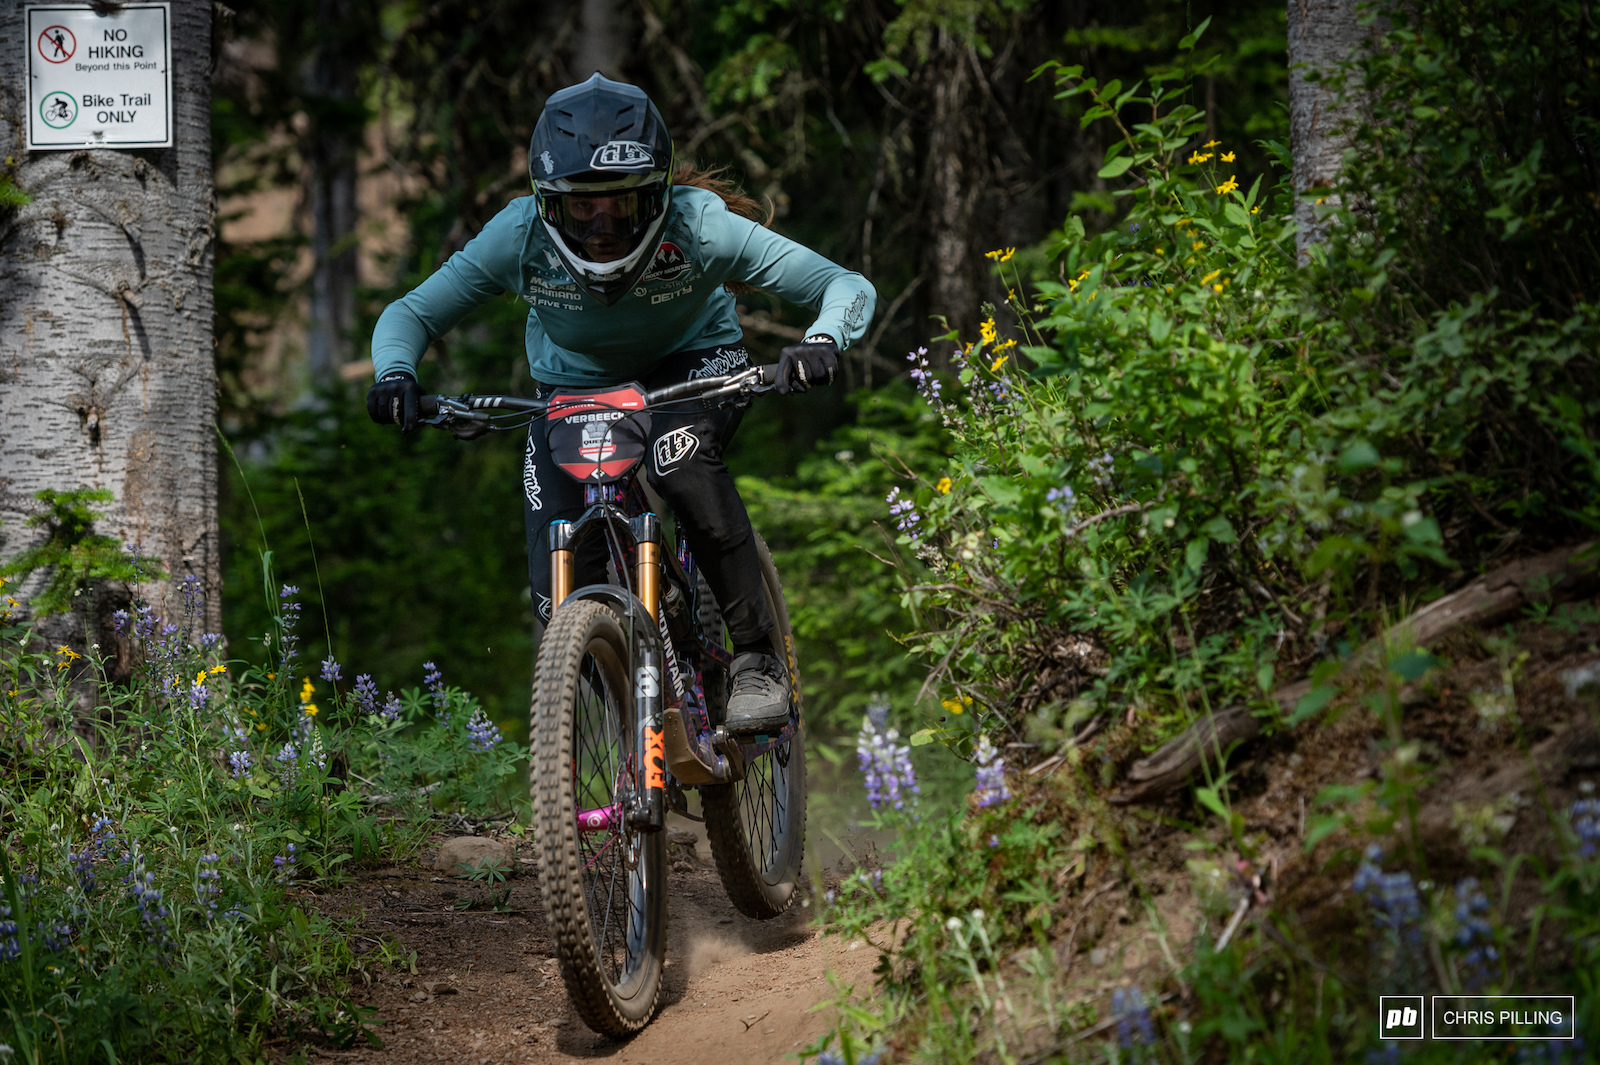 Vaea Verbeeck calm and cool on course